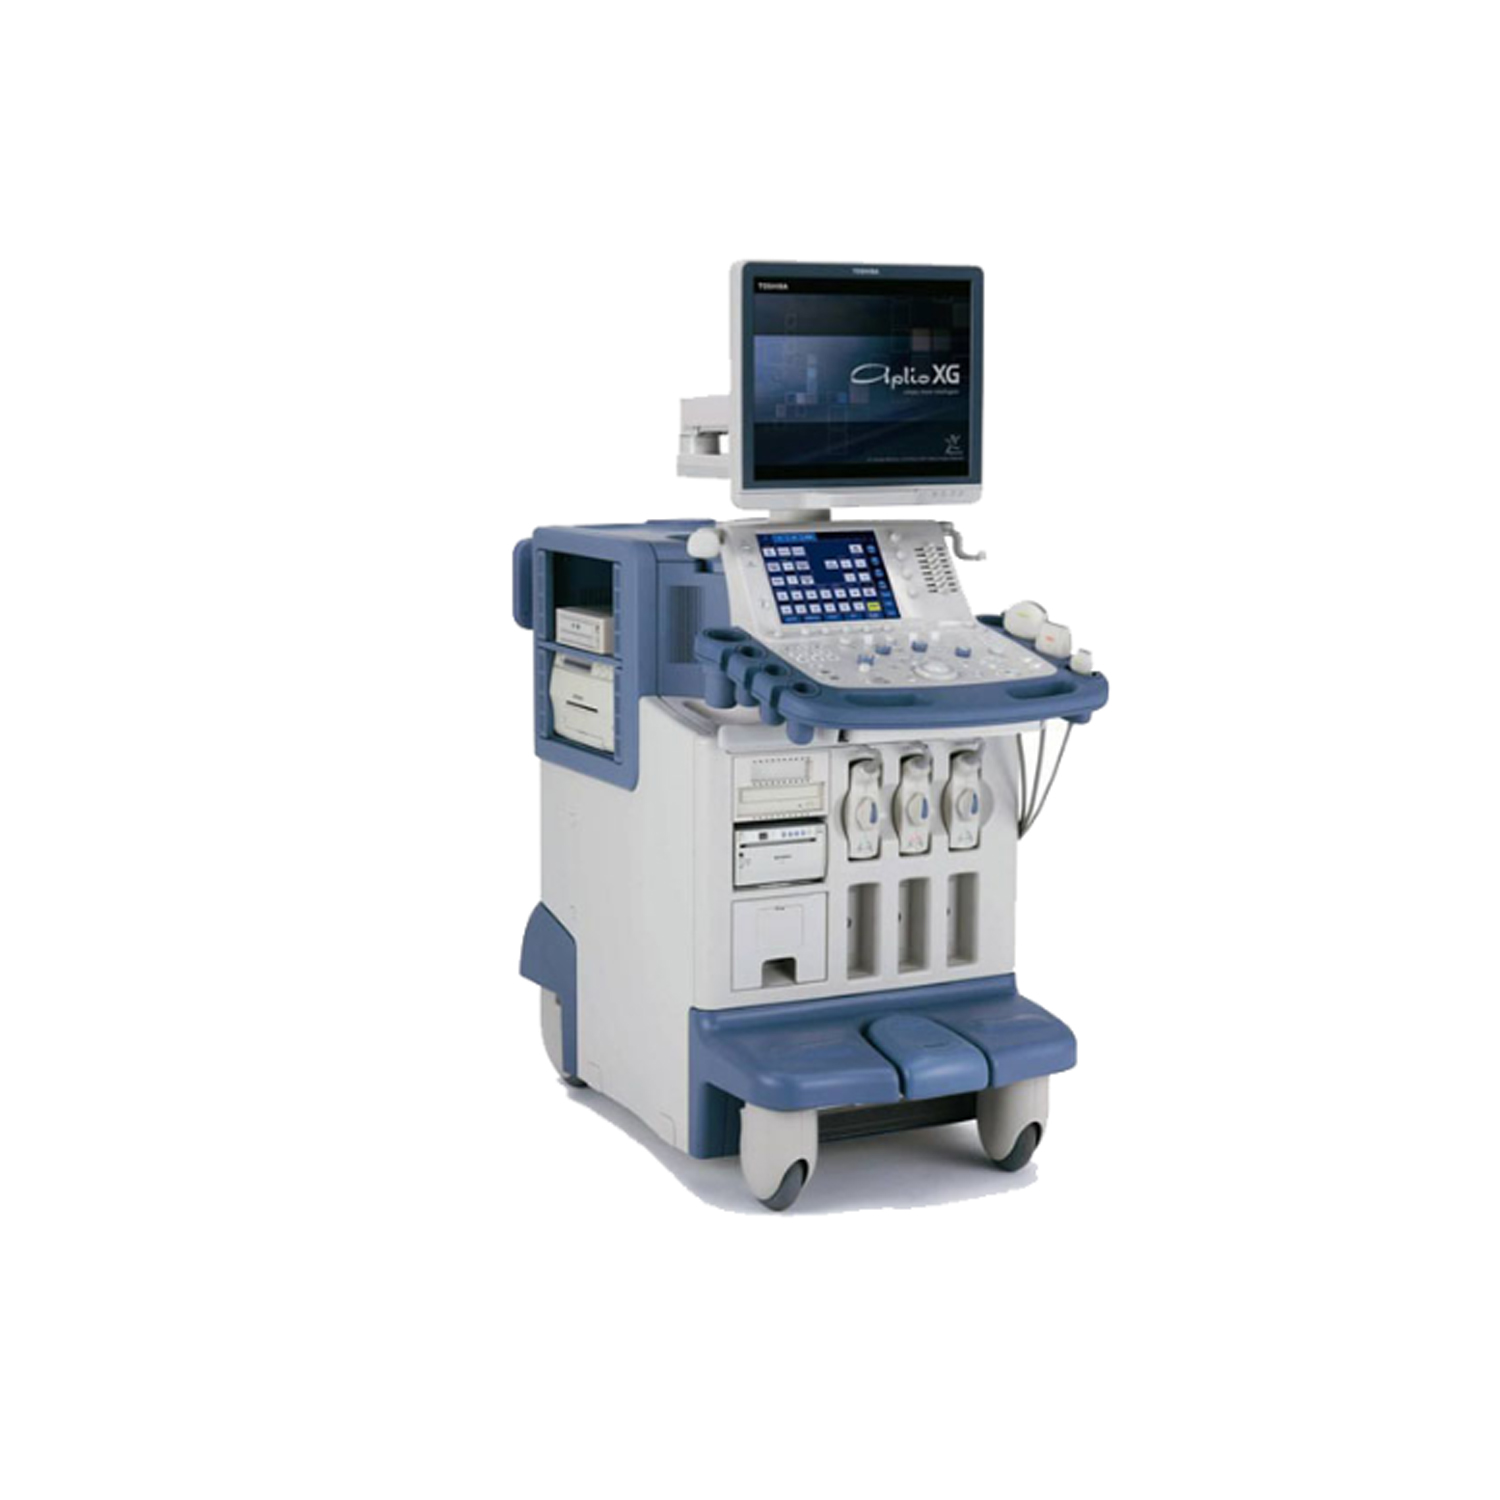 Toshiba Aplio XG Ultrasound Machine